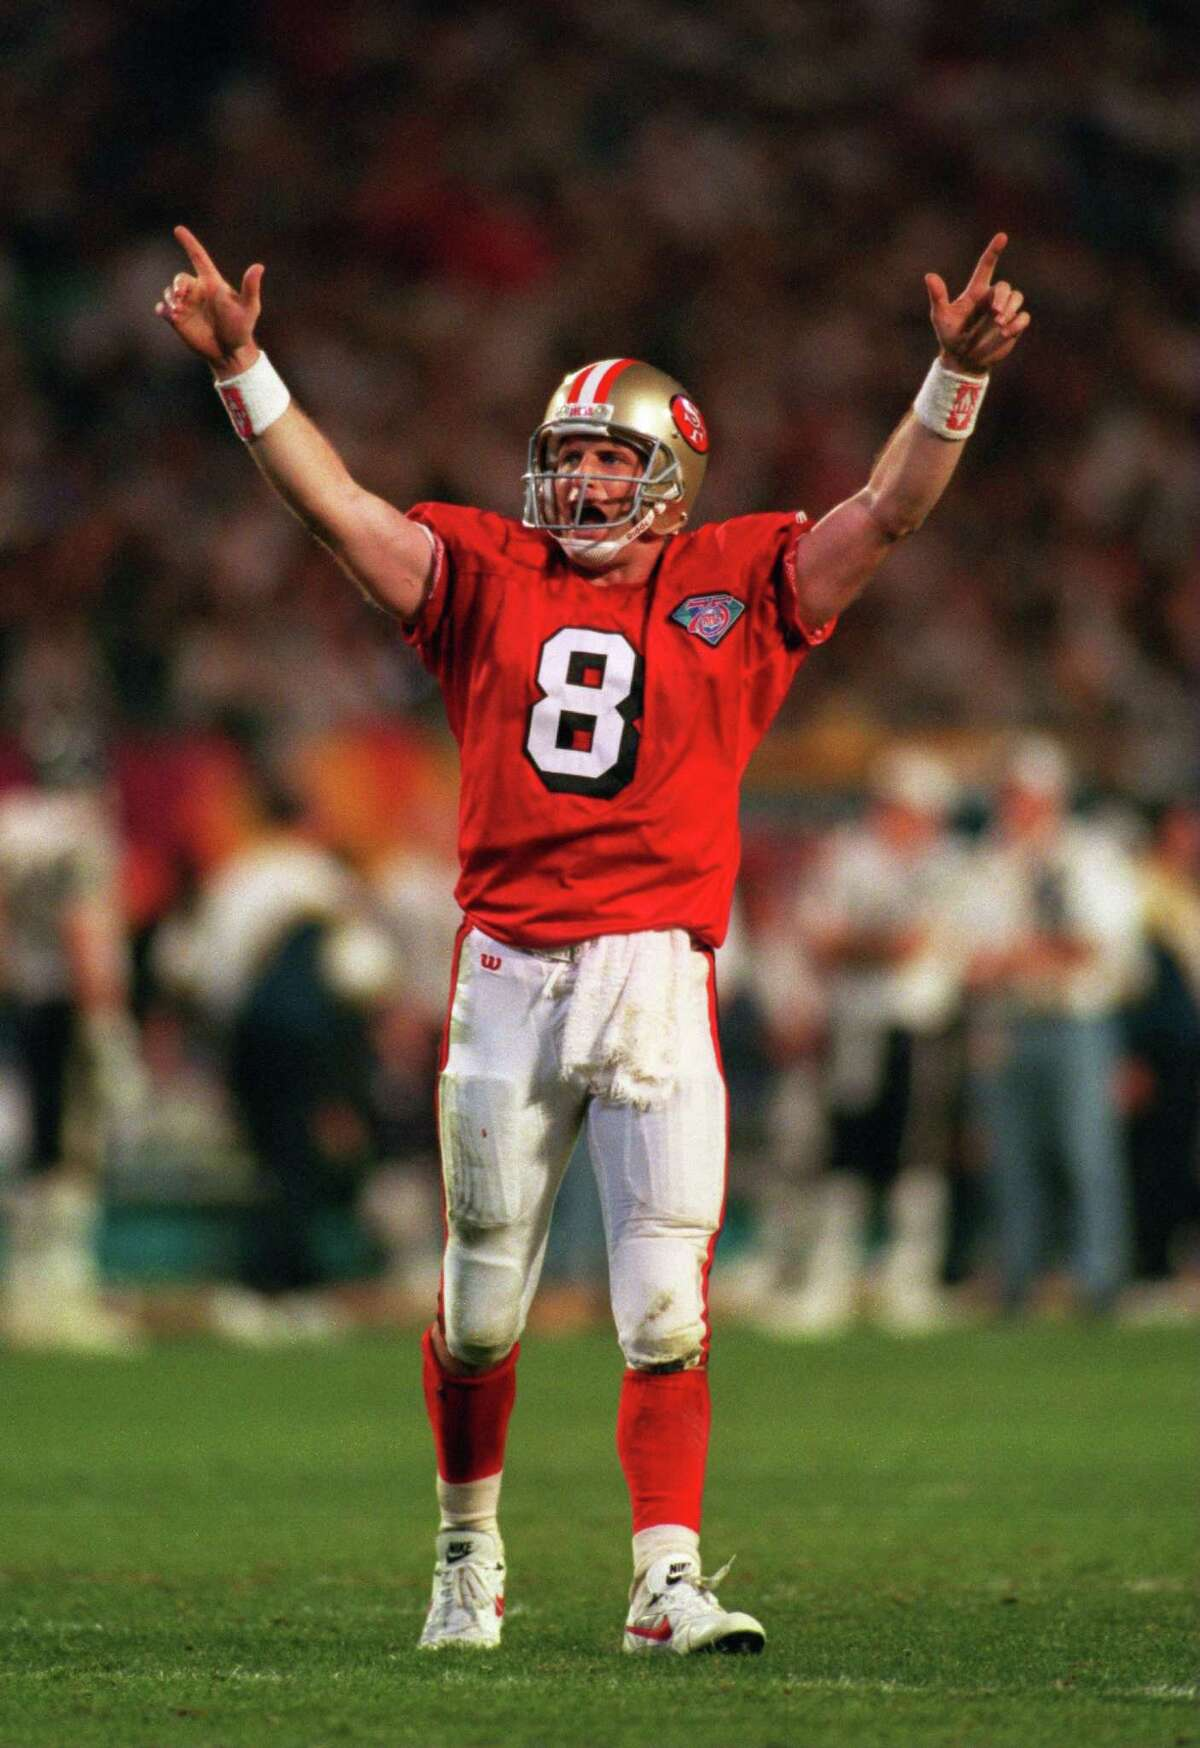 29 Jan 1995: SAN FRANCISCO QUARTERBACK STEVE YOUNG CELEBRATES AFTER THROWING A 15 YARD TOUCHDOWN PASS TO JERRY RICE TO PUT THE 49ERS UP 42-10 DURING THE THIRD QUARTER OF THE SAN FRANCISCO 49ERS VERSUS SAN DIEGO CHARGERS IN SUPER BOWL XXIX AT JOE ROBBIE ST